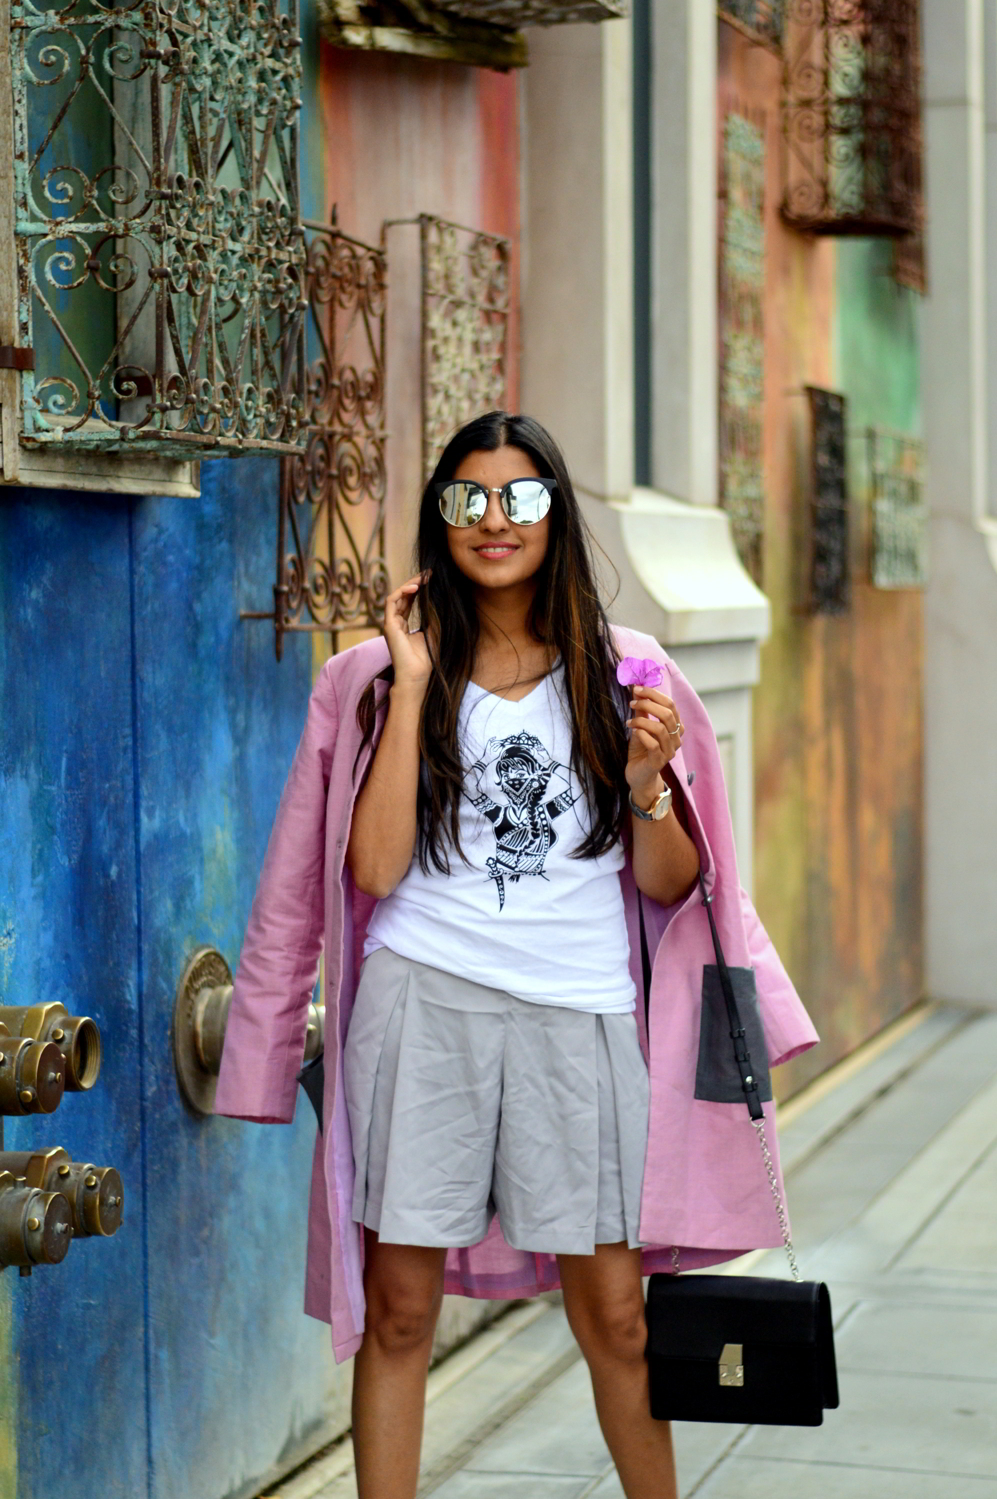 pink-coat-summer-layers-bay-area-style-blogger-outfit 2